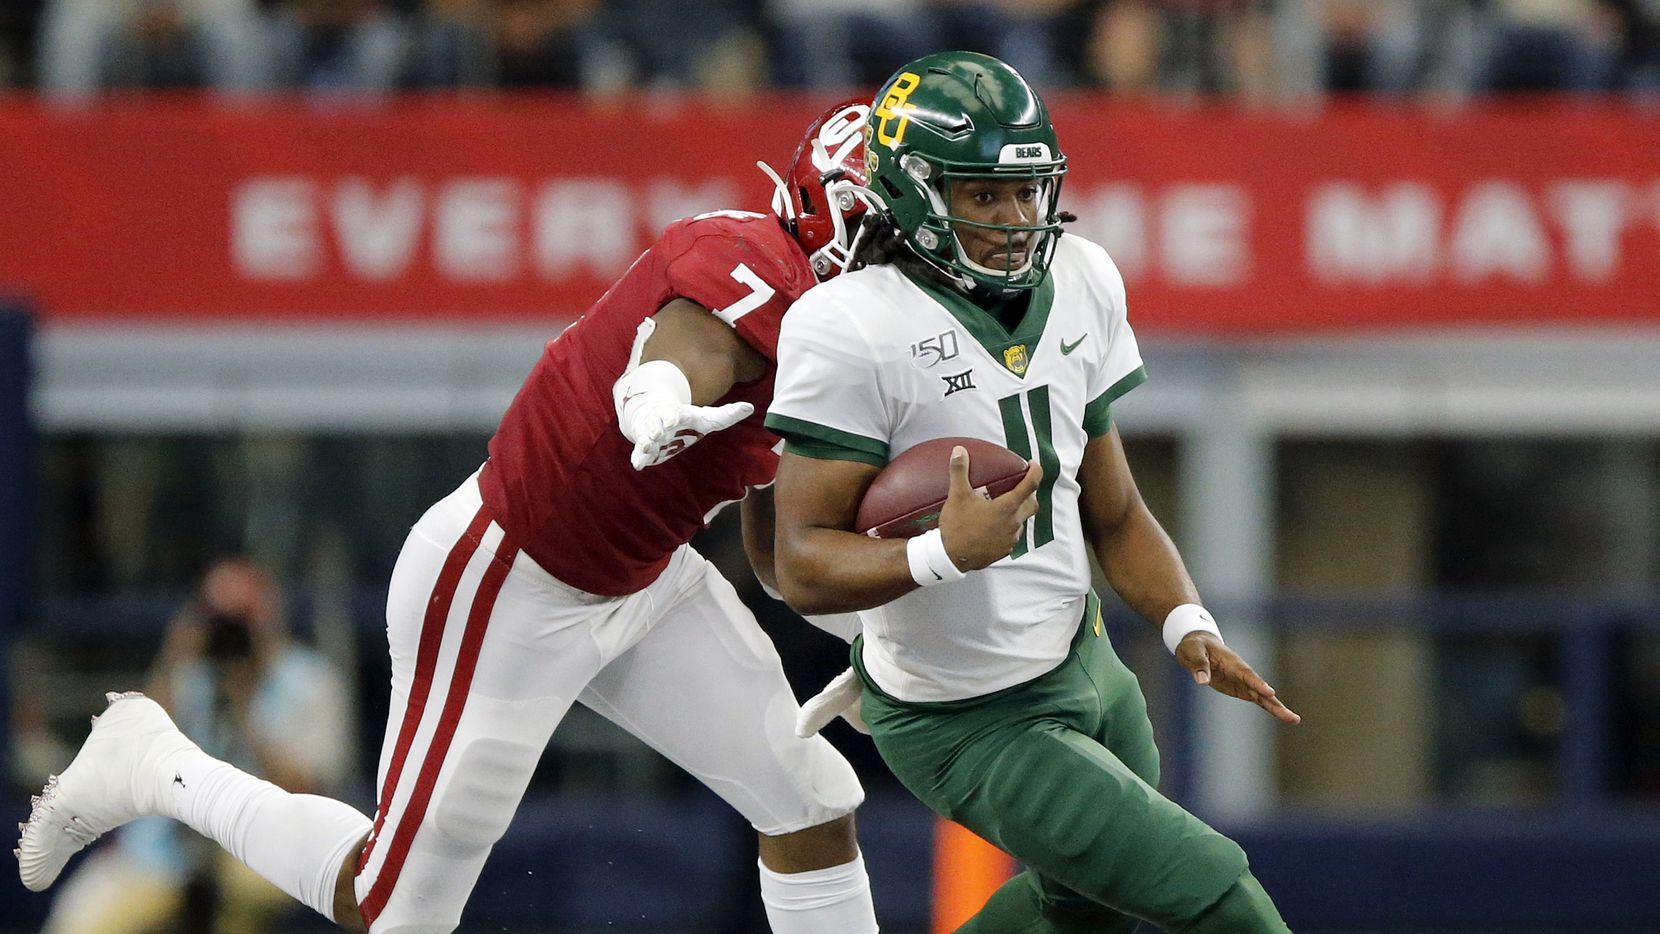 5 Takeaways From Baylor S Big 12 Championship Loss To